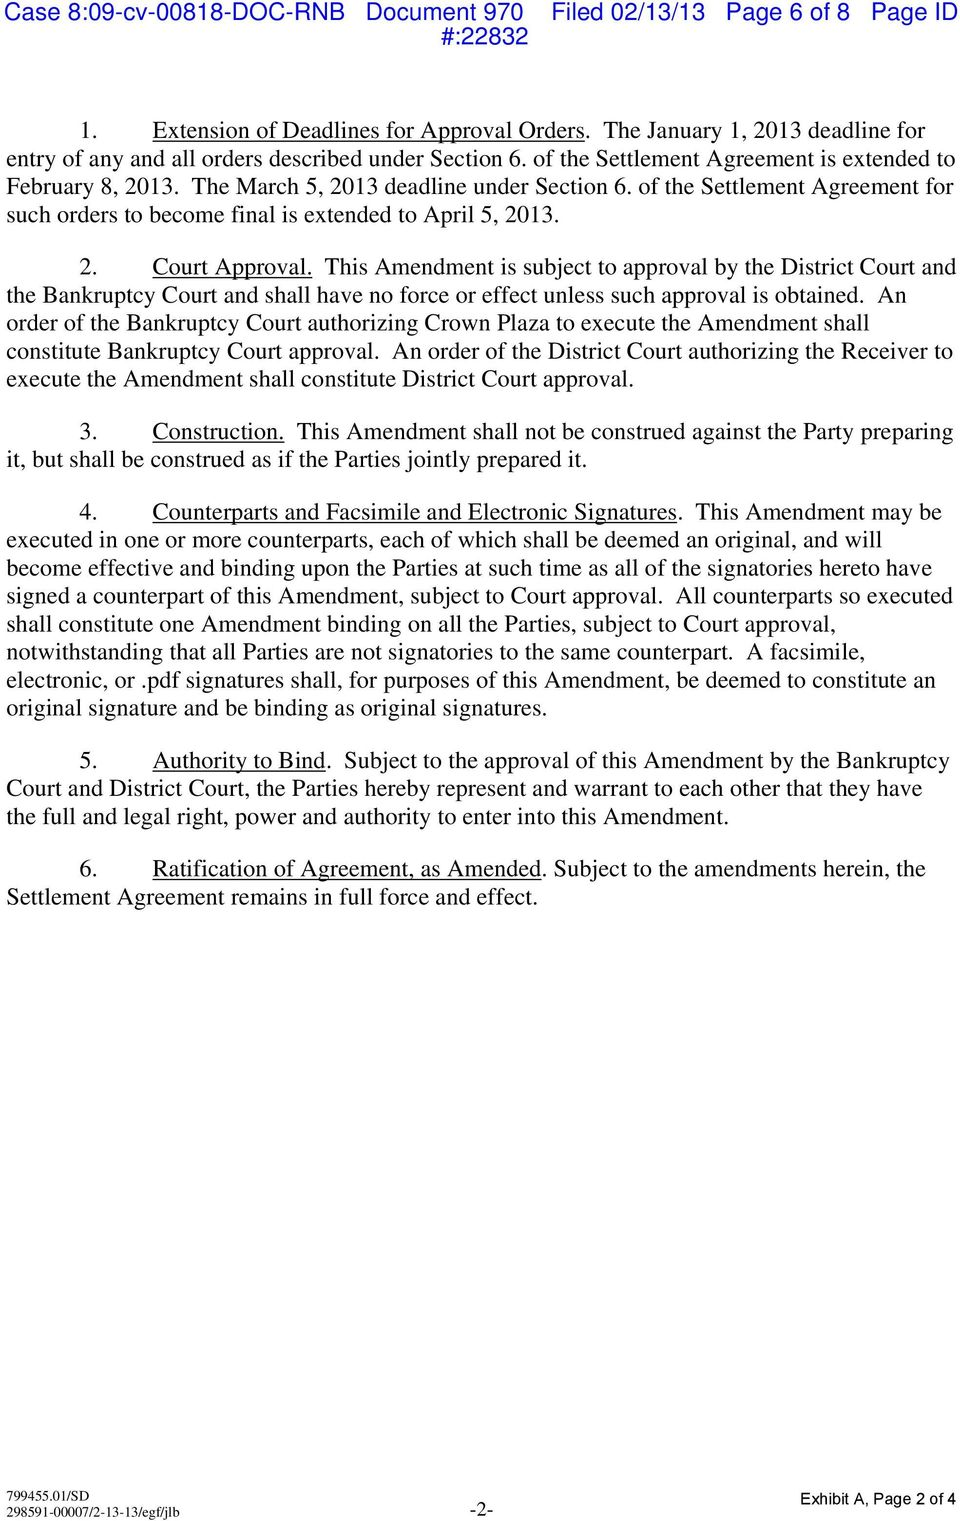 This Amendment is subject to approval by the District Court and the Bankruptcy Court and shall have no force or effect unless such approval is obtained.